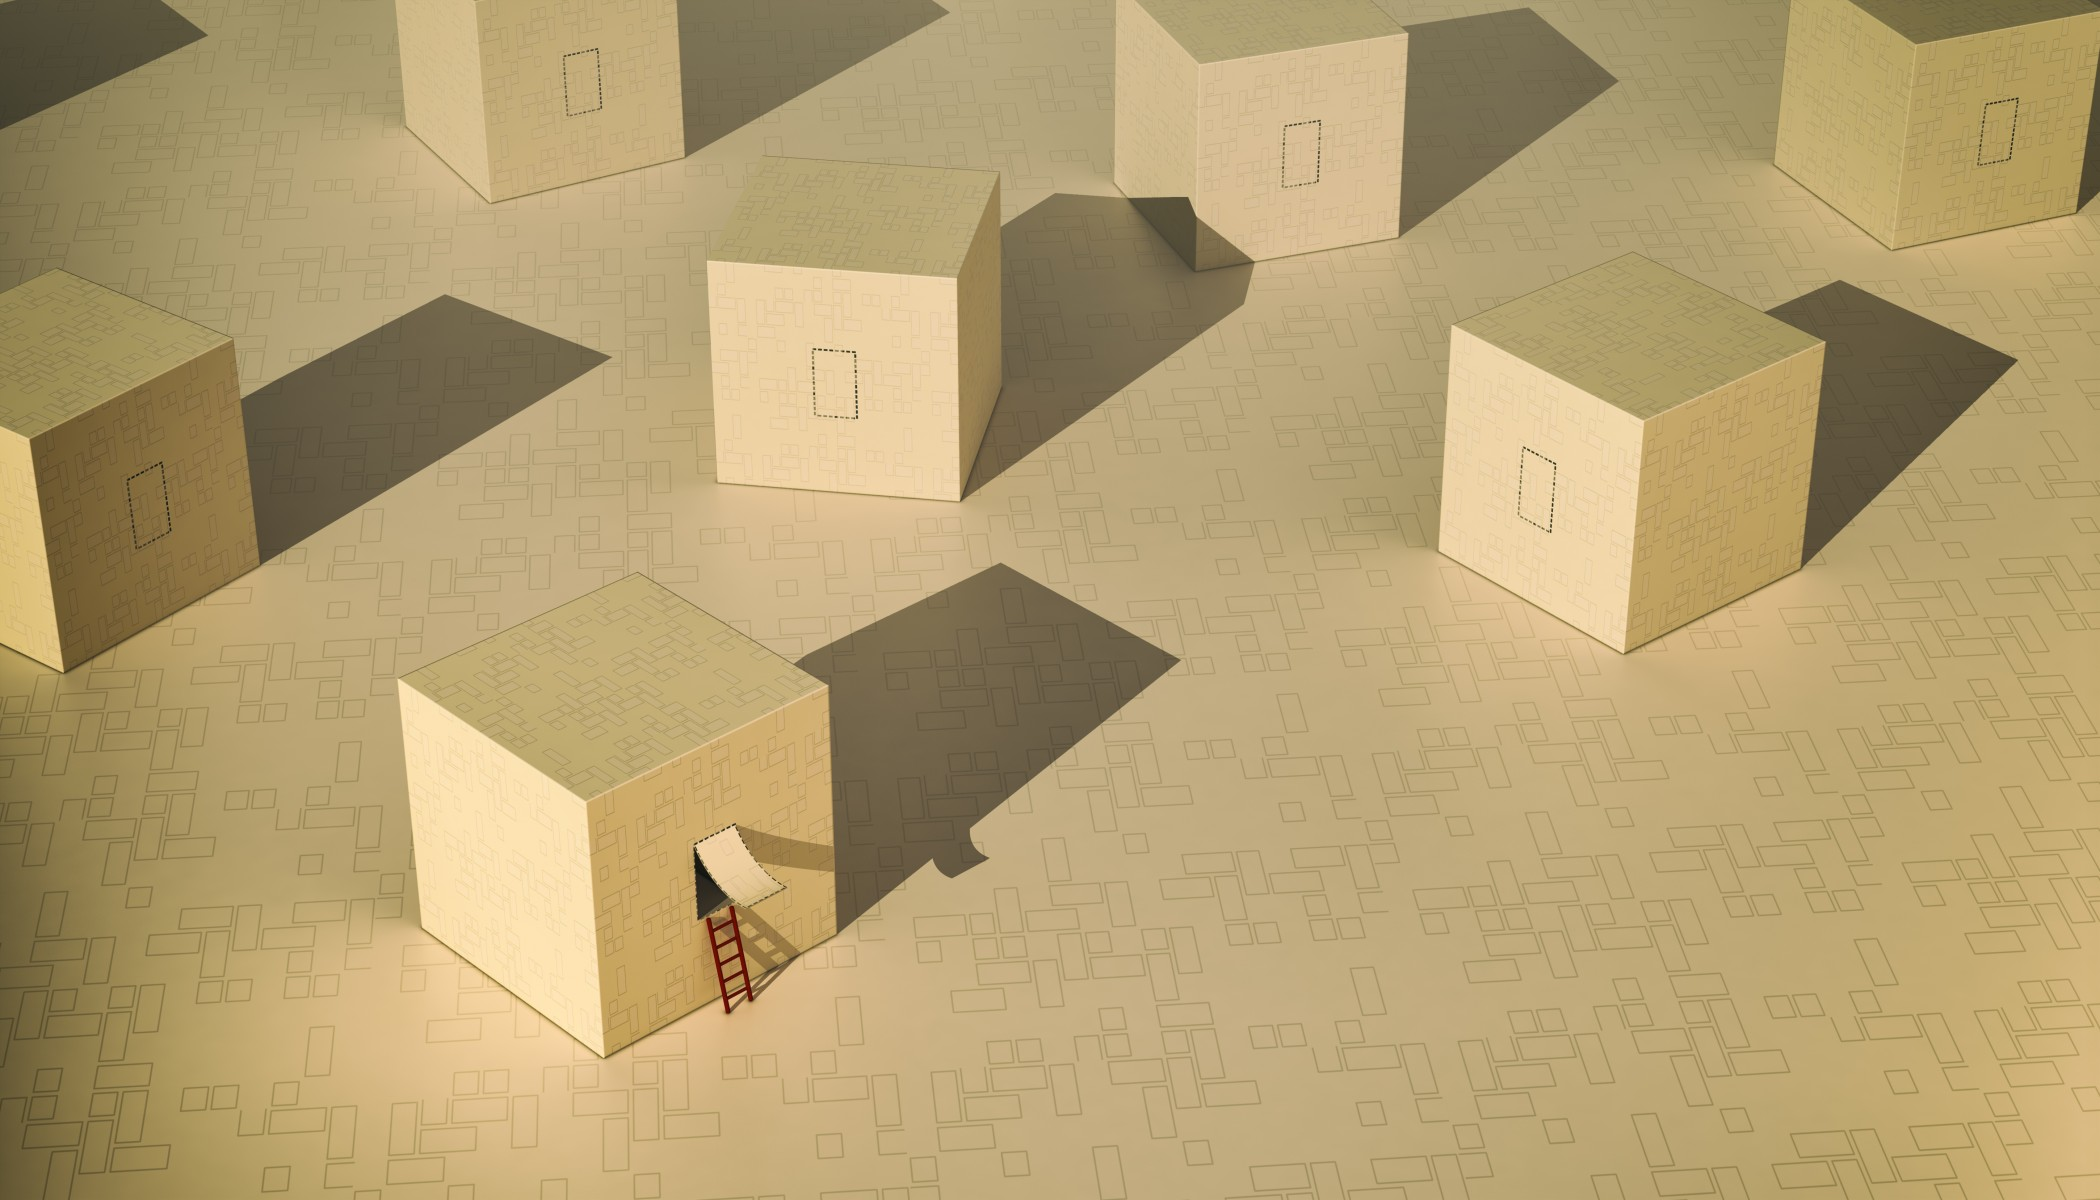 some boxes, one of them is open and has a ladder, concept of solution, freedom, or thinking outside the box (3d render)